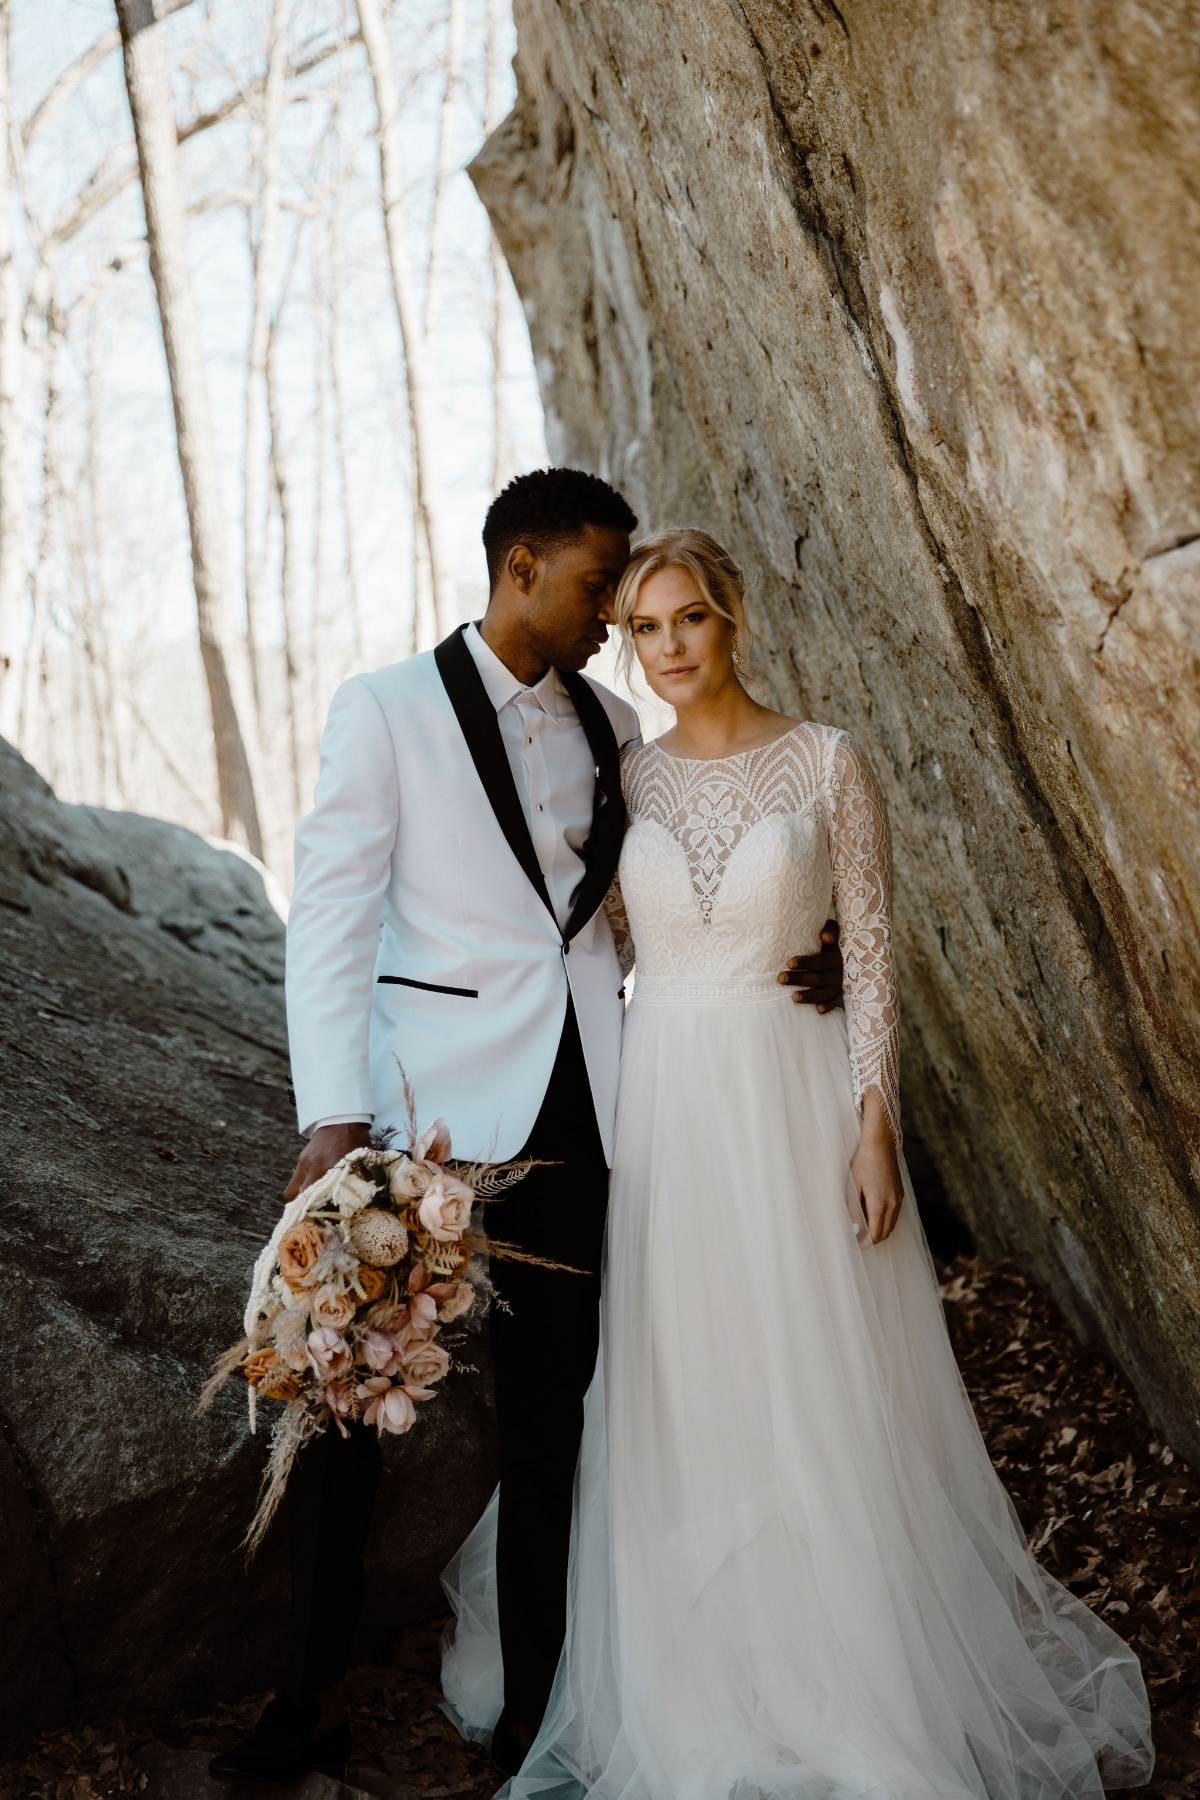 long sleeve wedding dress with lace details